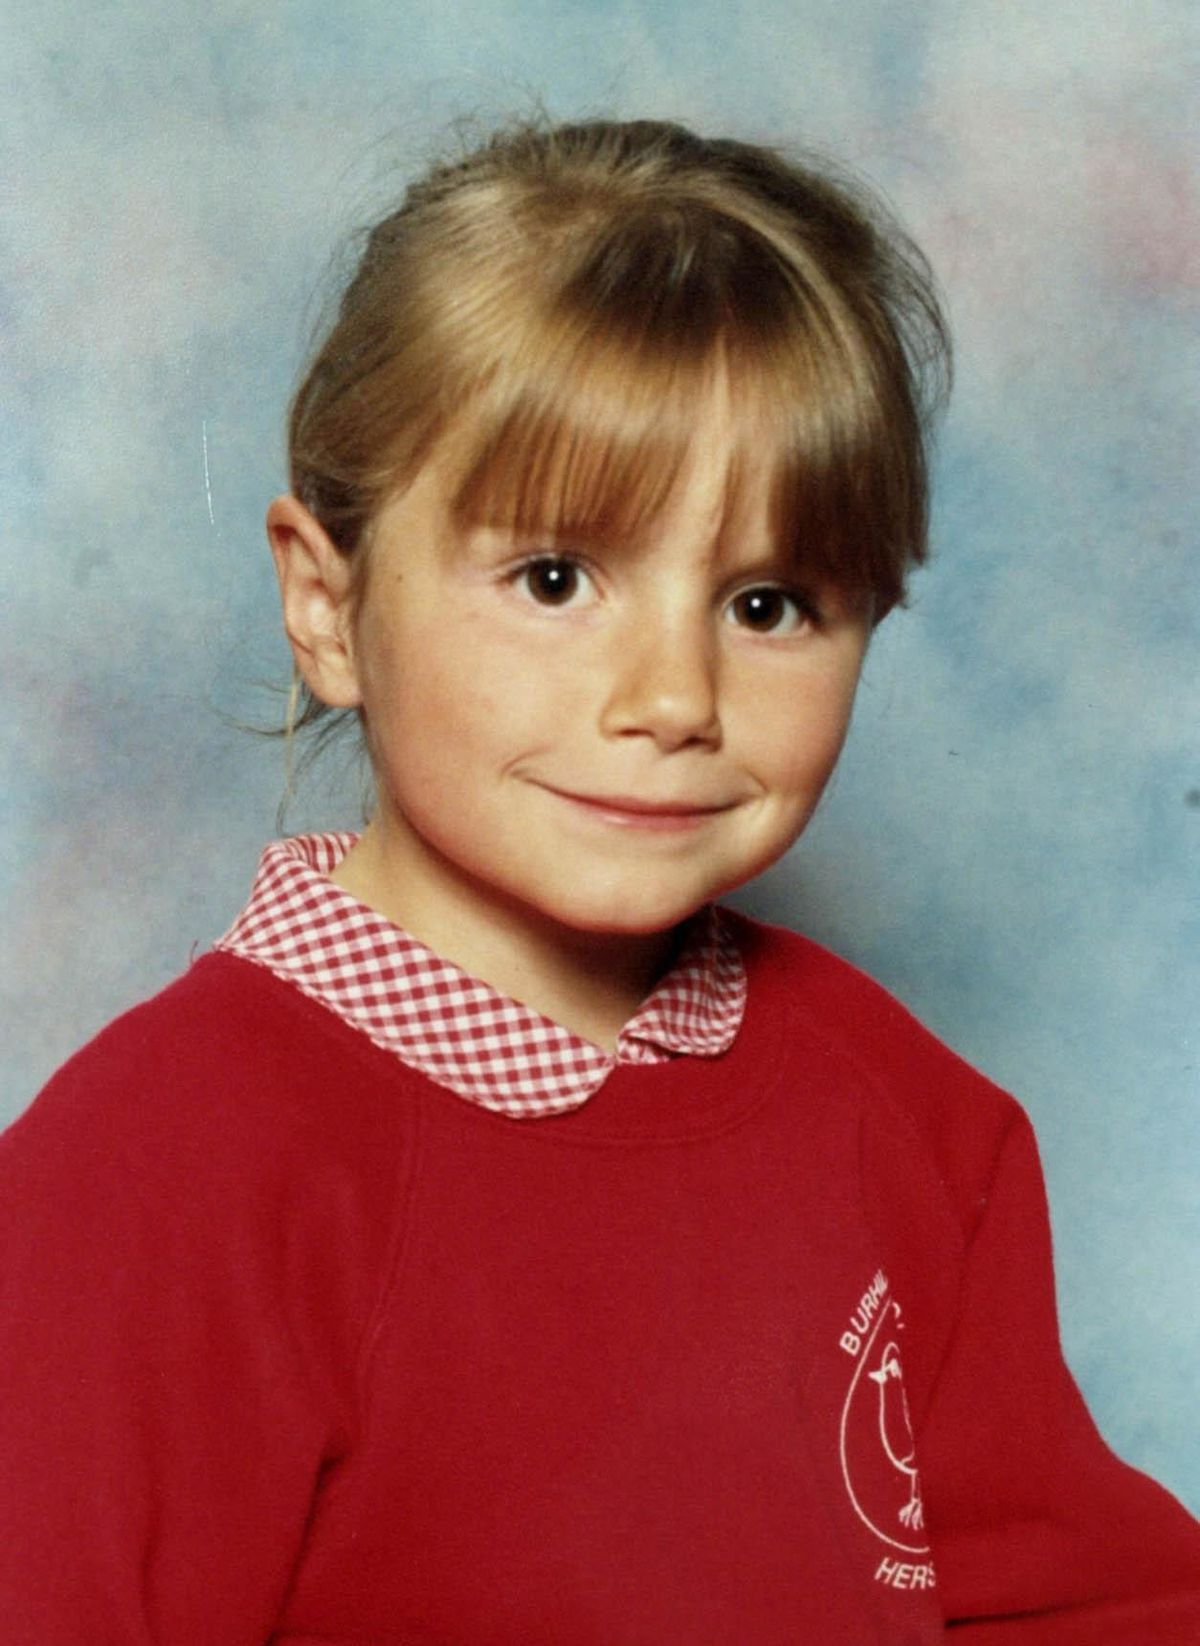 Sarah Payne was found dead 17 days after she disappeared